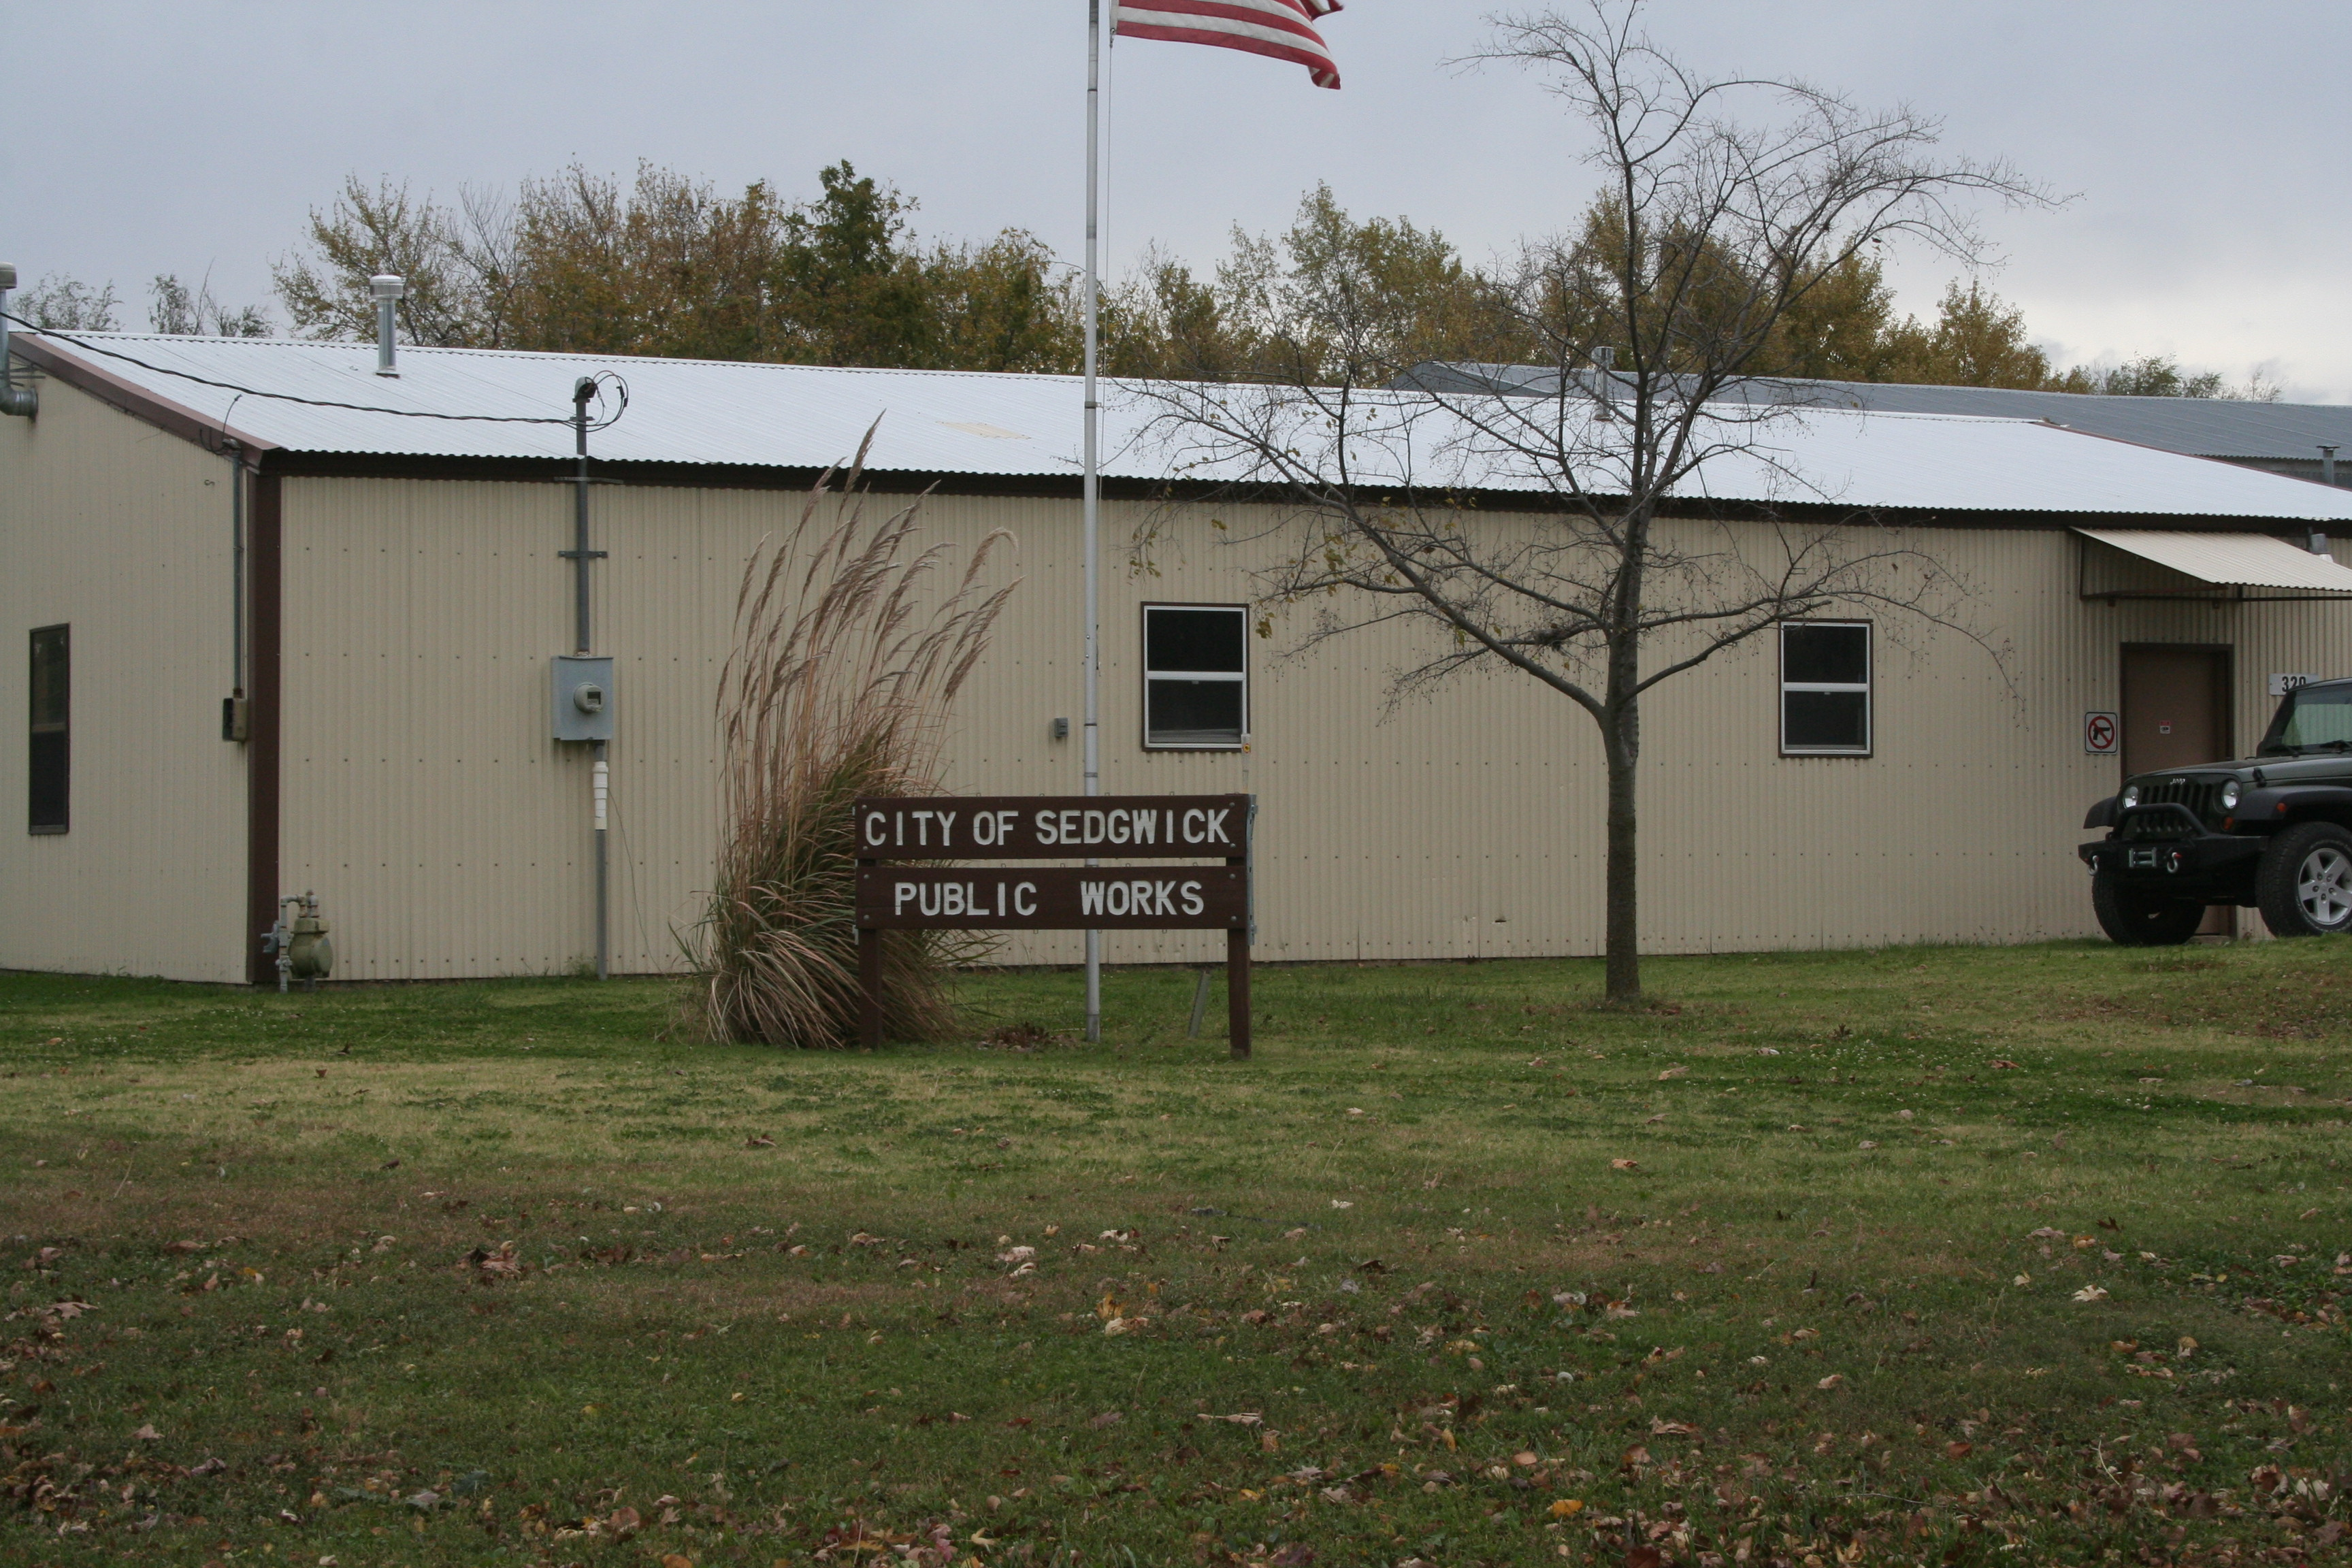 City of sedgwick public works